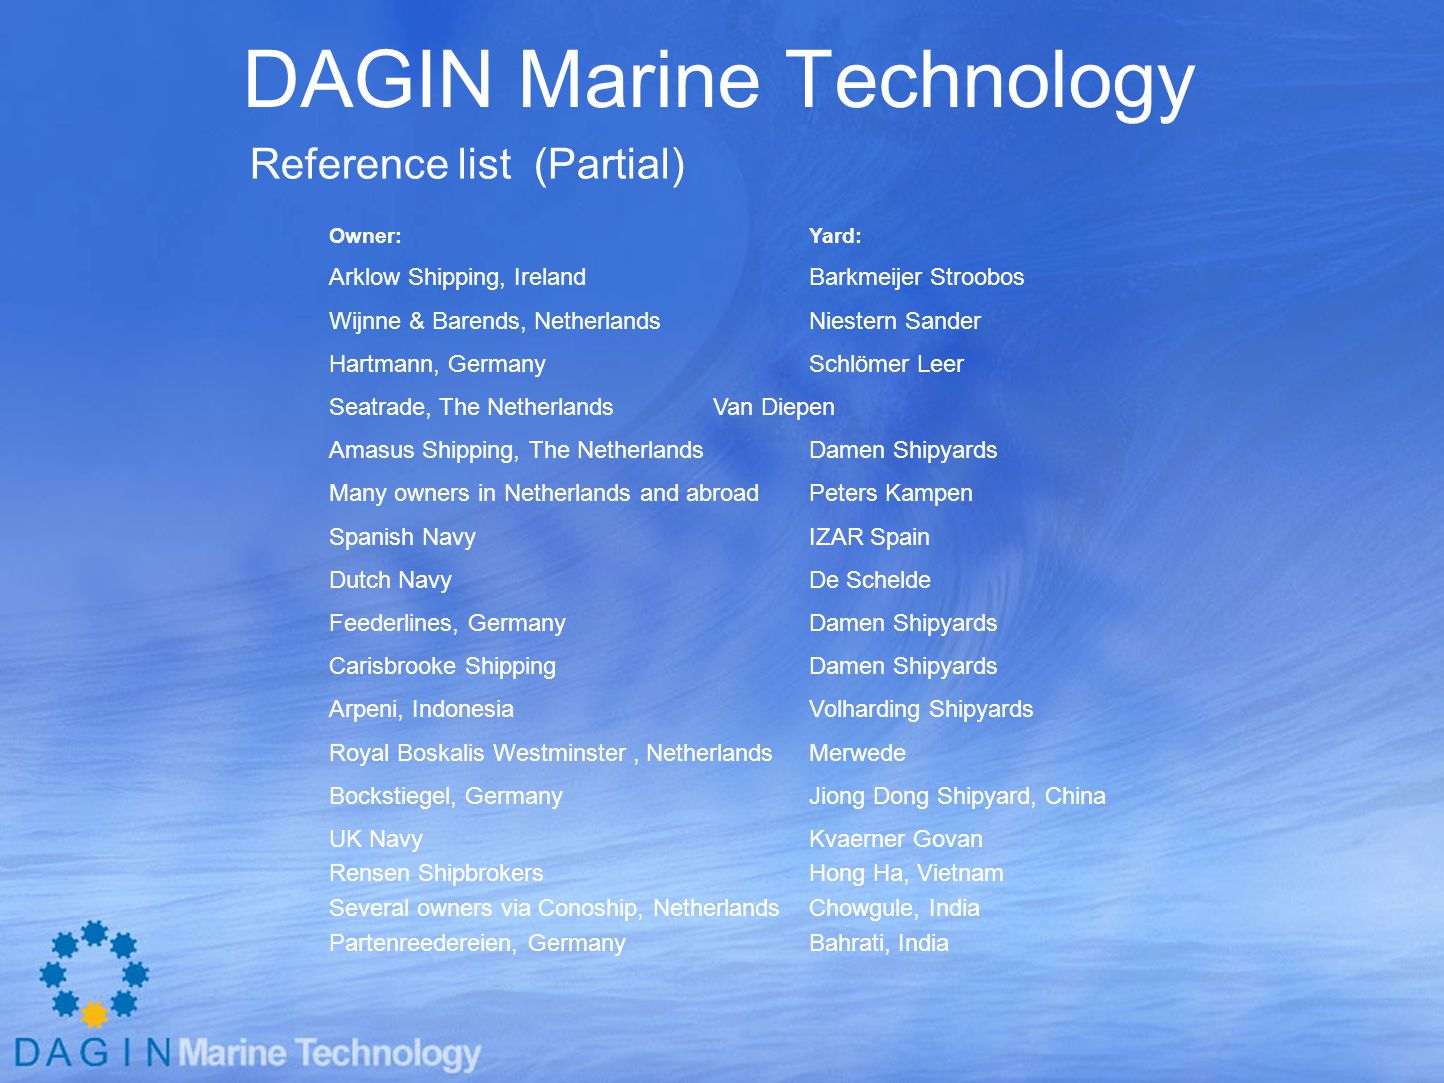 DAGIN Marine Technology Reference list (Partial) Owner:Yard: Arklow Shipping, IrelandBarkmeijer Stroobos Wijnne & Barends, NetherlandsNiestern Sander Hartmann, GermanySchlömer Leer Seatrade, The NetherlandsVan Diepen Amasus Shipping, The NetherlandsDamen Shipyards Many owners in Netherlands and abroadPeters Kampen Spanish NavyIZAR Spain Dutch NavyDe Schelde Feederlines, GermanyDamen Shipyards Carisbrooke ShippingDamen Shipyards Arpeni, IndonesiaVolharding Shipyards Royal Boskalis Westminster, Netherlands Merwede Bockstiegel, GermanyJiong Dong Shipyard, China UK NavyKvaerner Govan Rensen ShipbrokersHong Ha, Vietnam Several owners via Conoship, NetherlandsChowgule, India Partenreedereien, GermanyBahrati, India